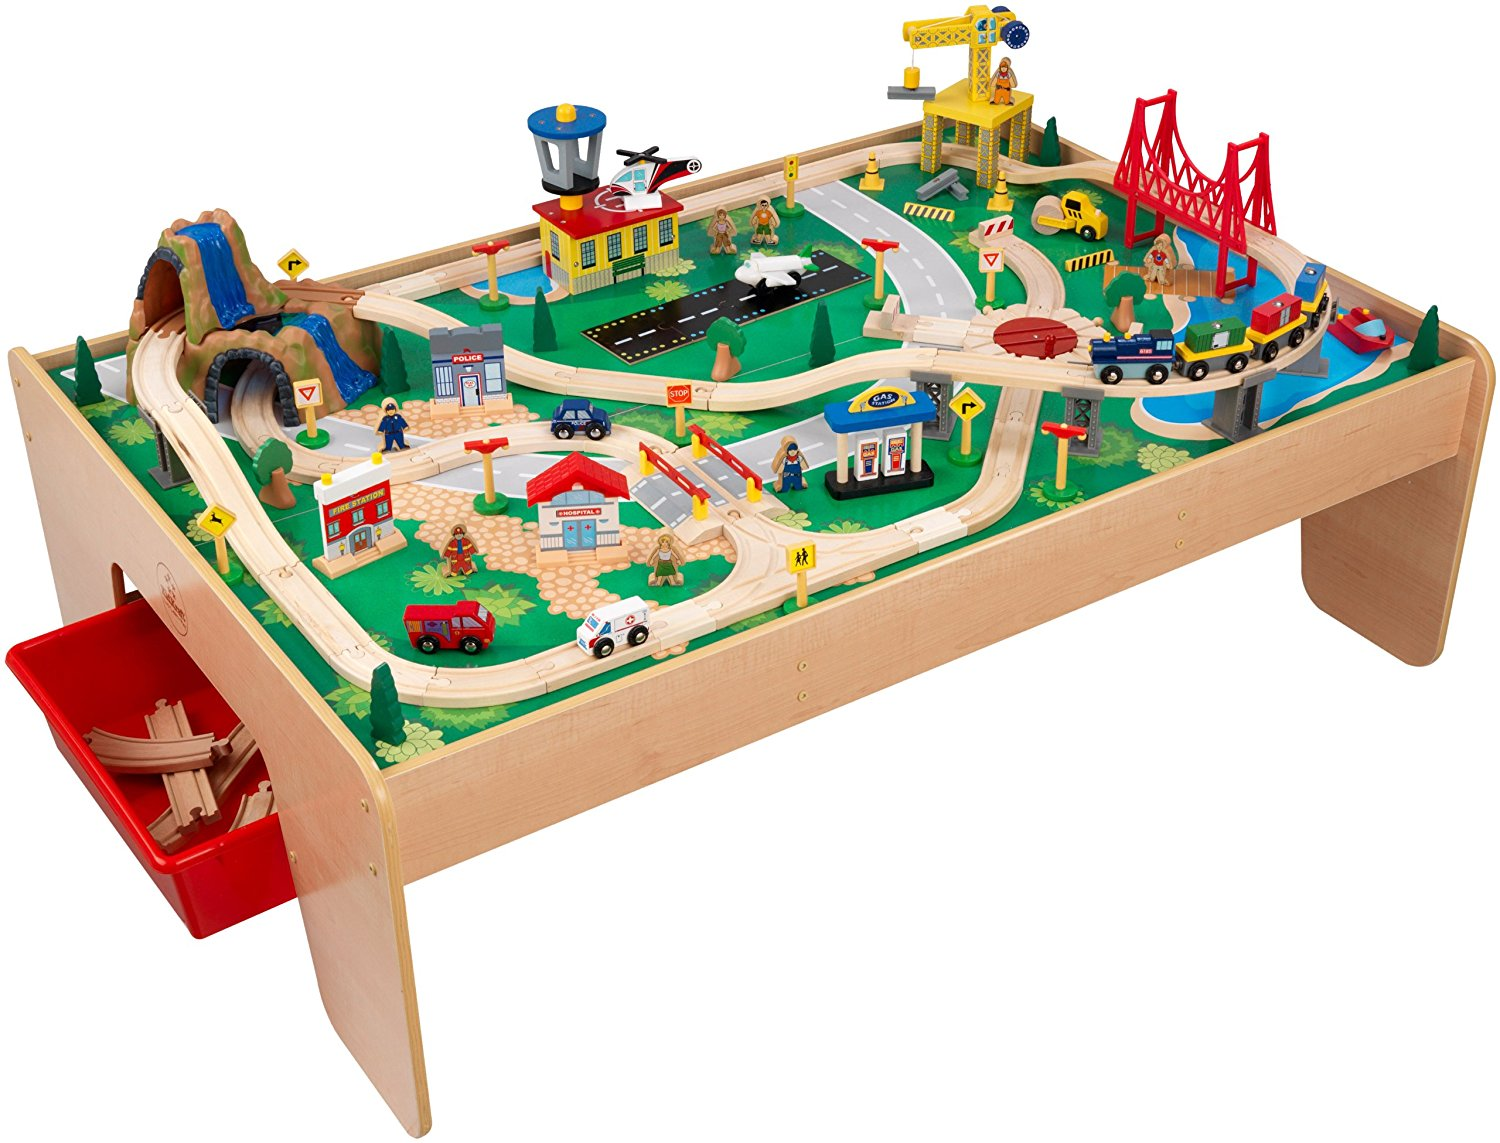 6 Best Toy Train Sets For Kids